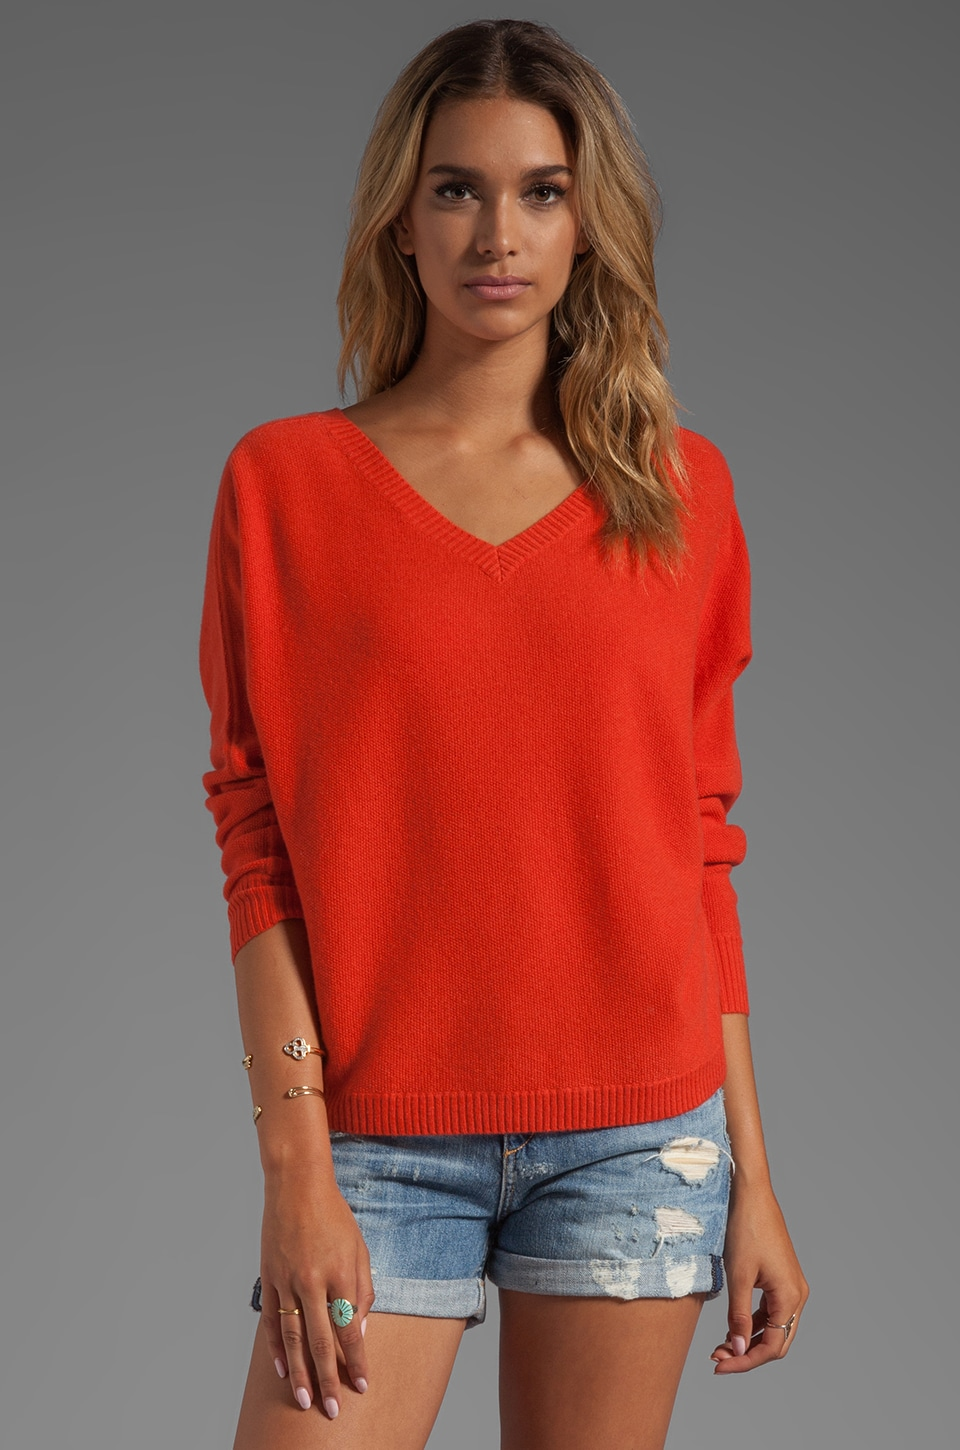 360 Sweater Julietta Cashmere Sweater in Blood Orange